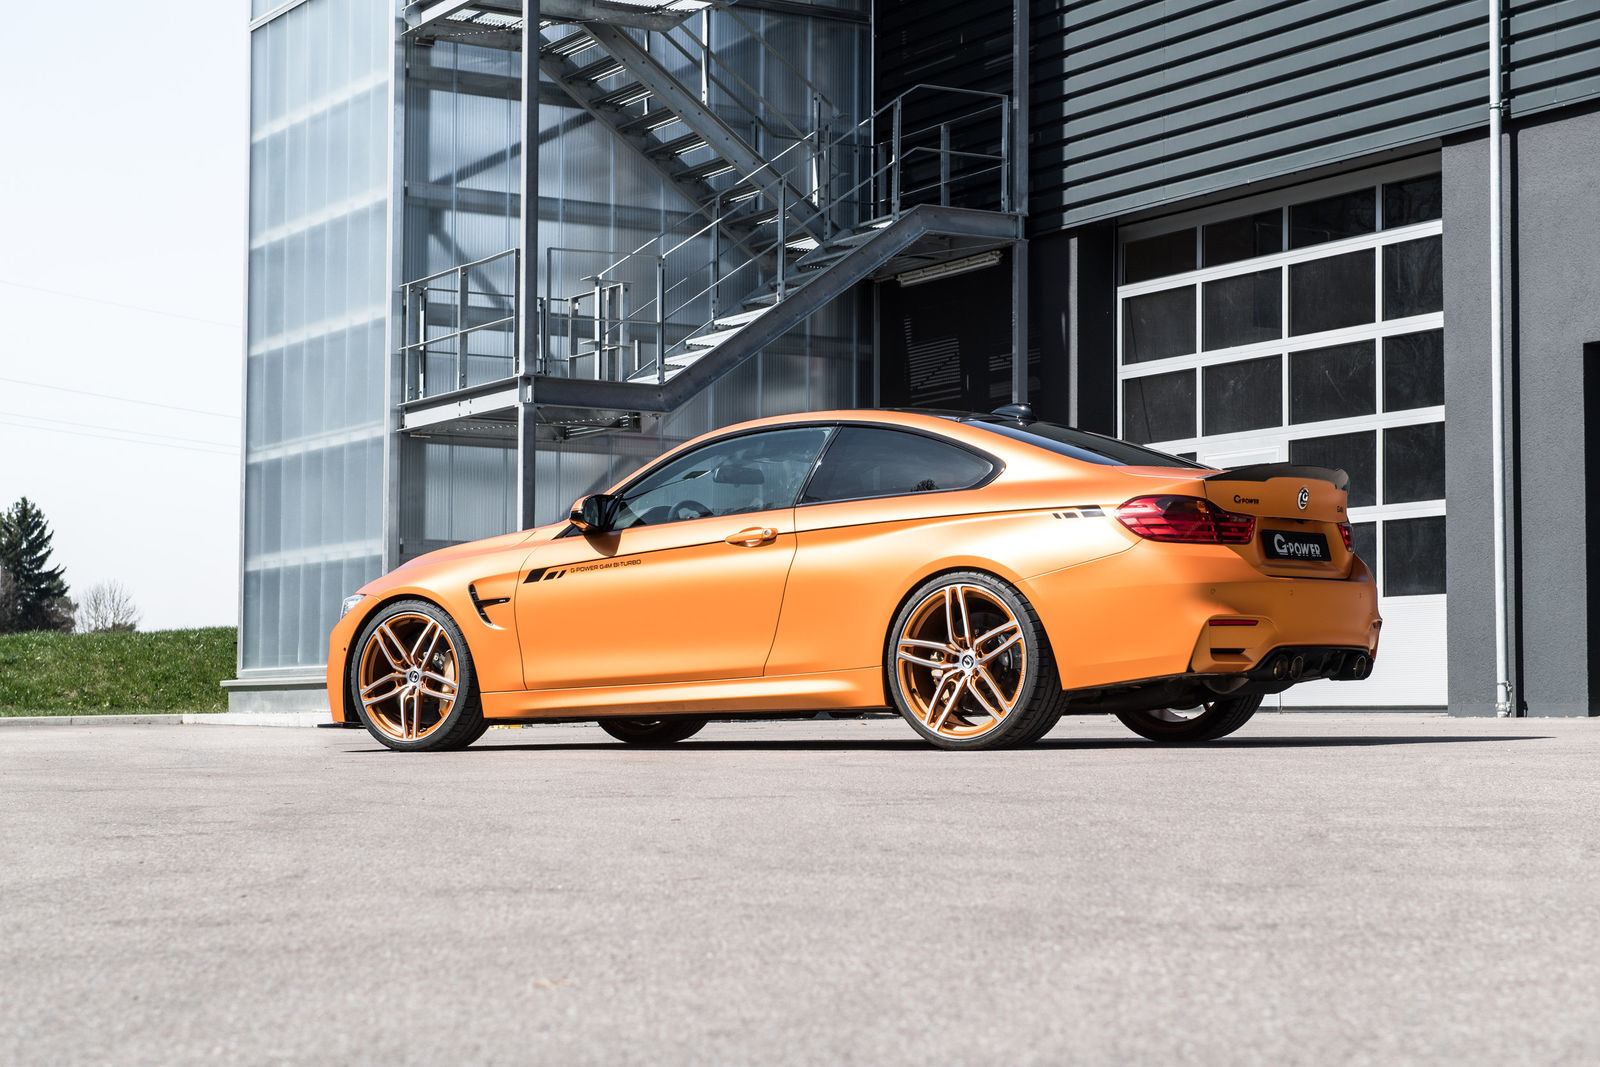 BMW M4 670ps by G-Power (2)